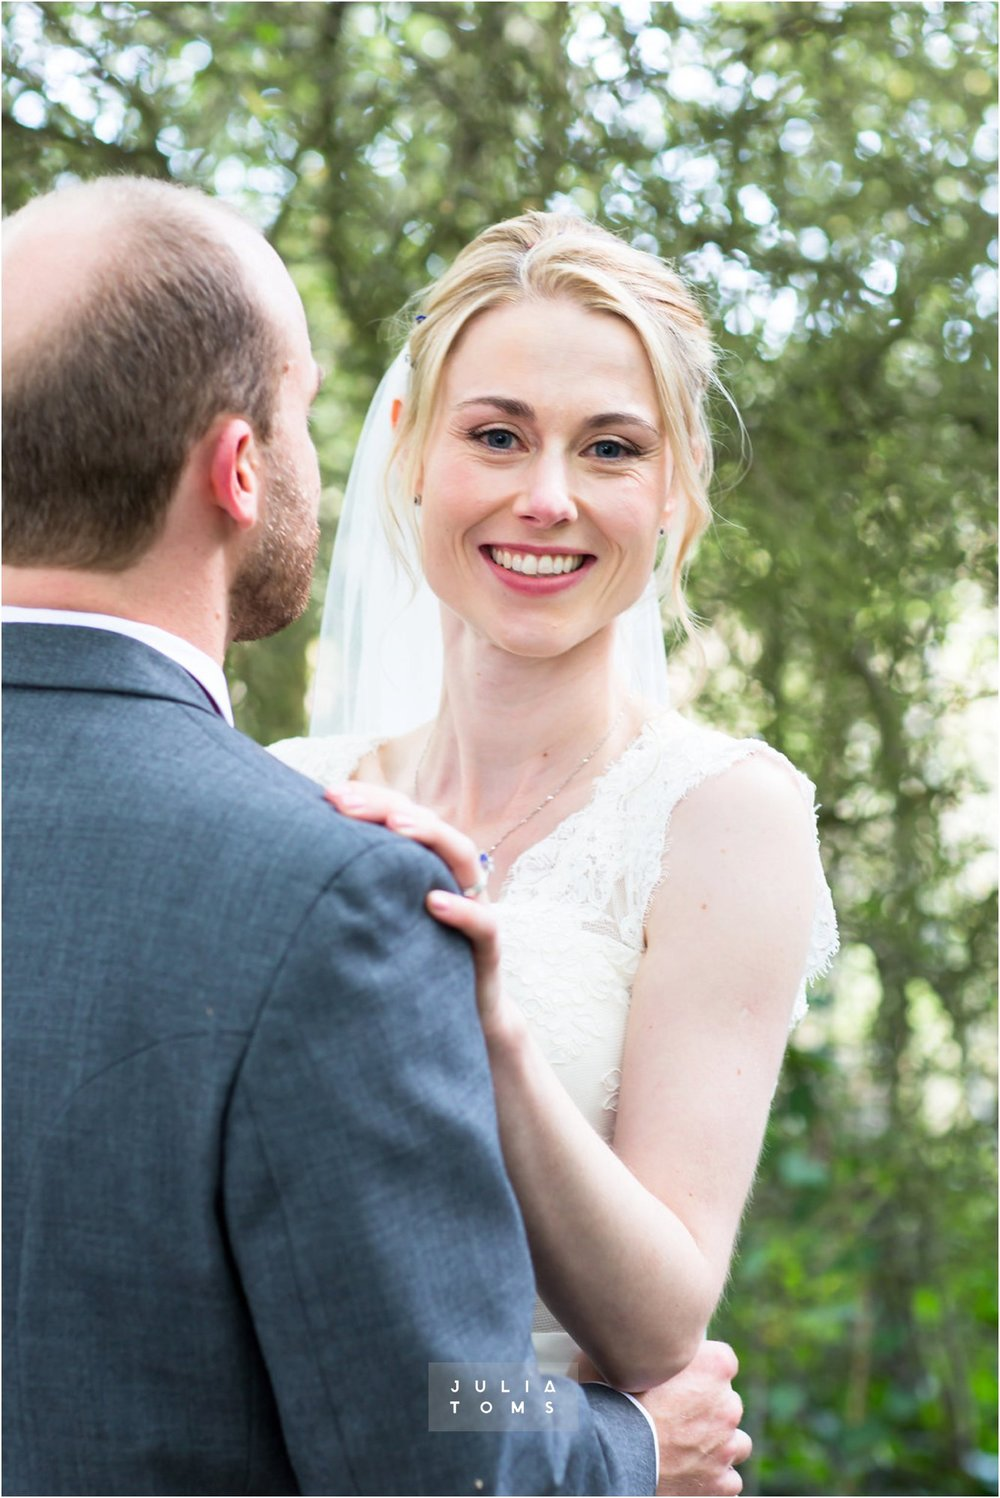 itchenor_wedding_chichester_photographer_042.jpg